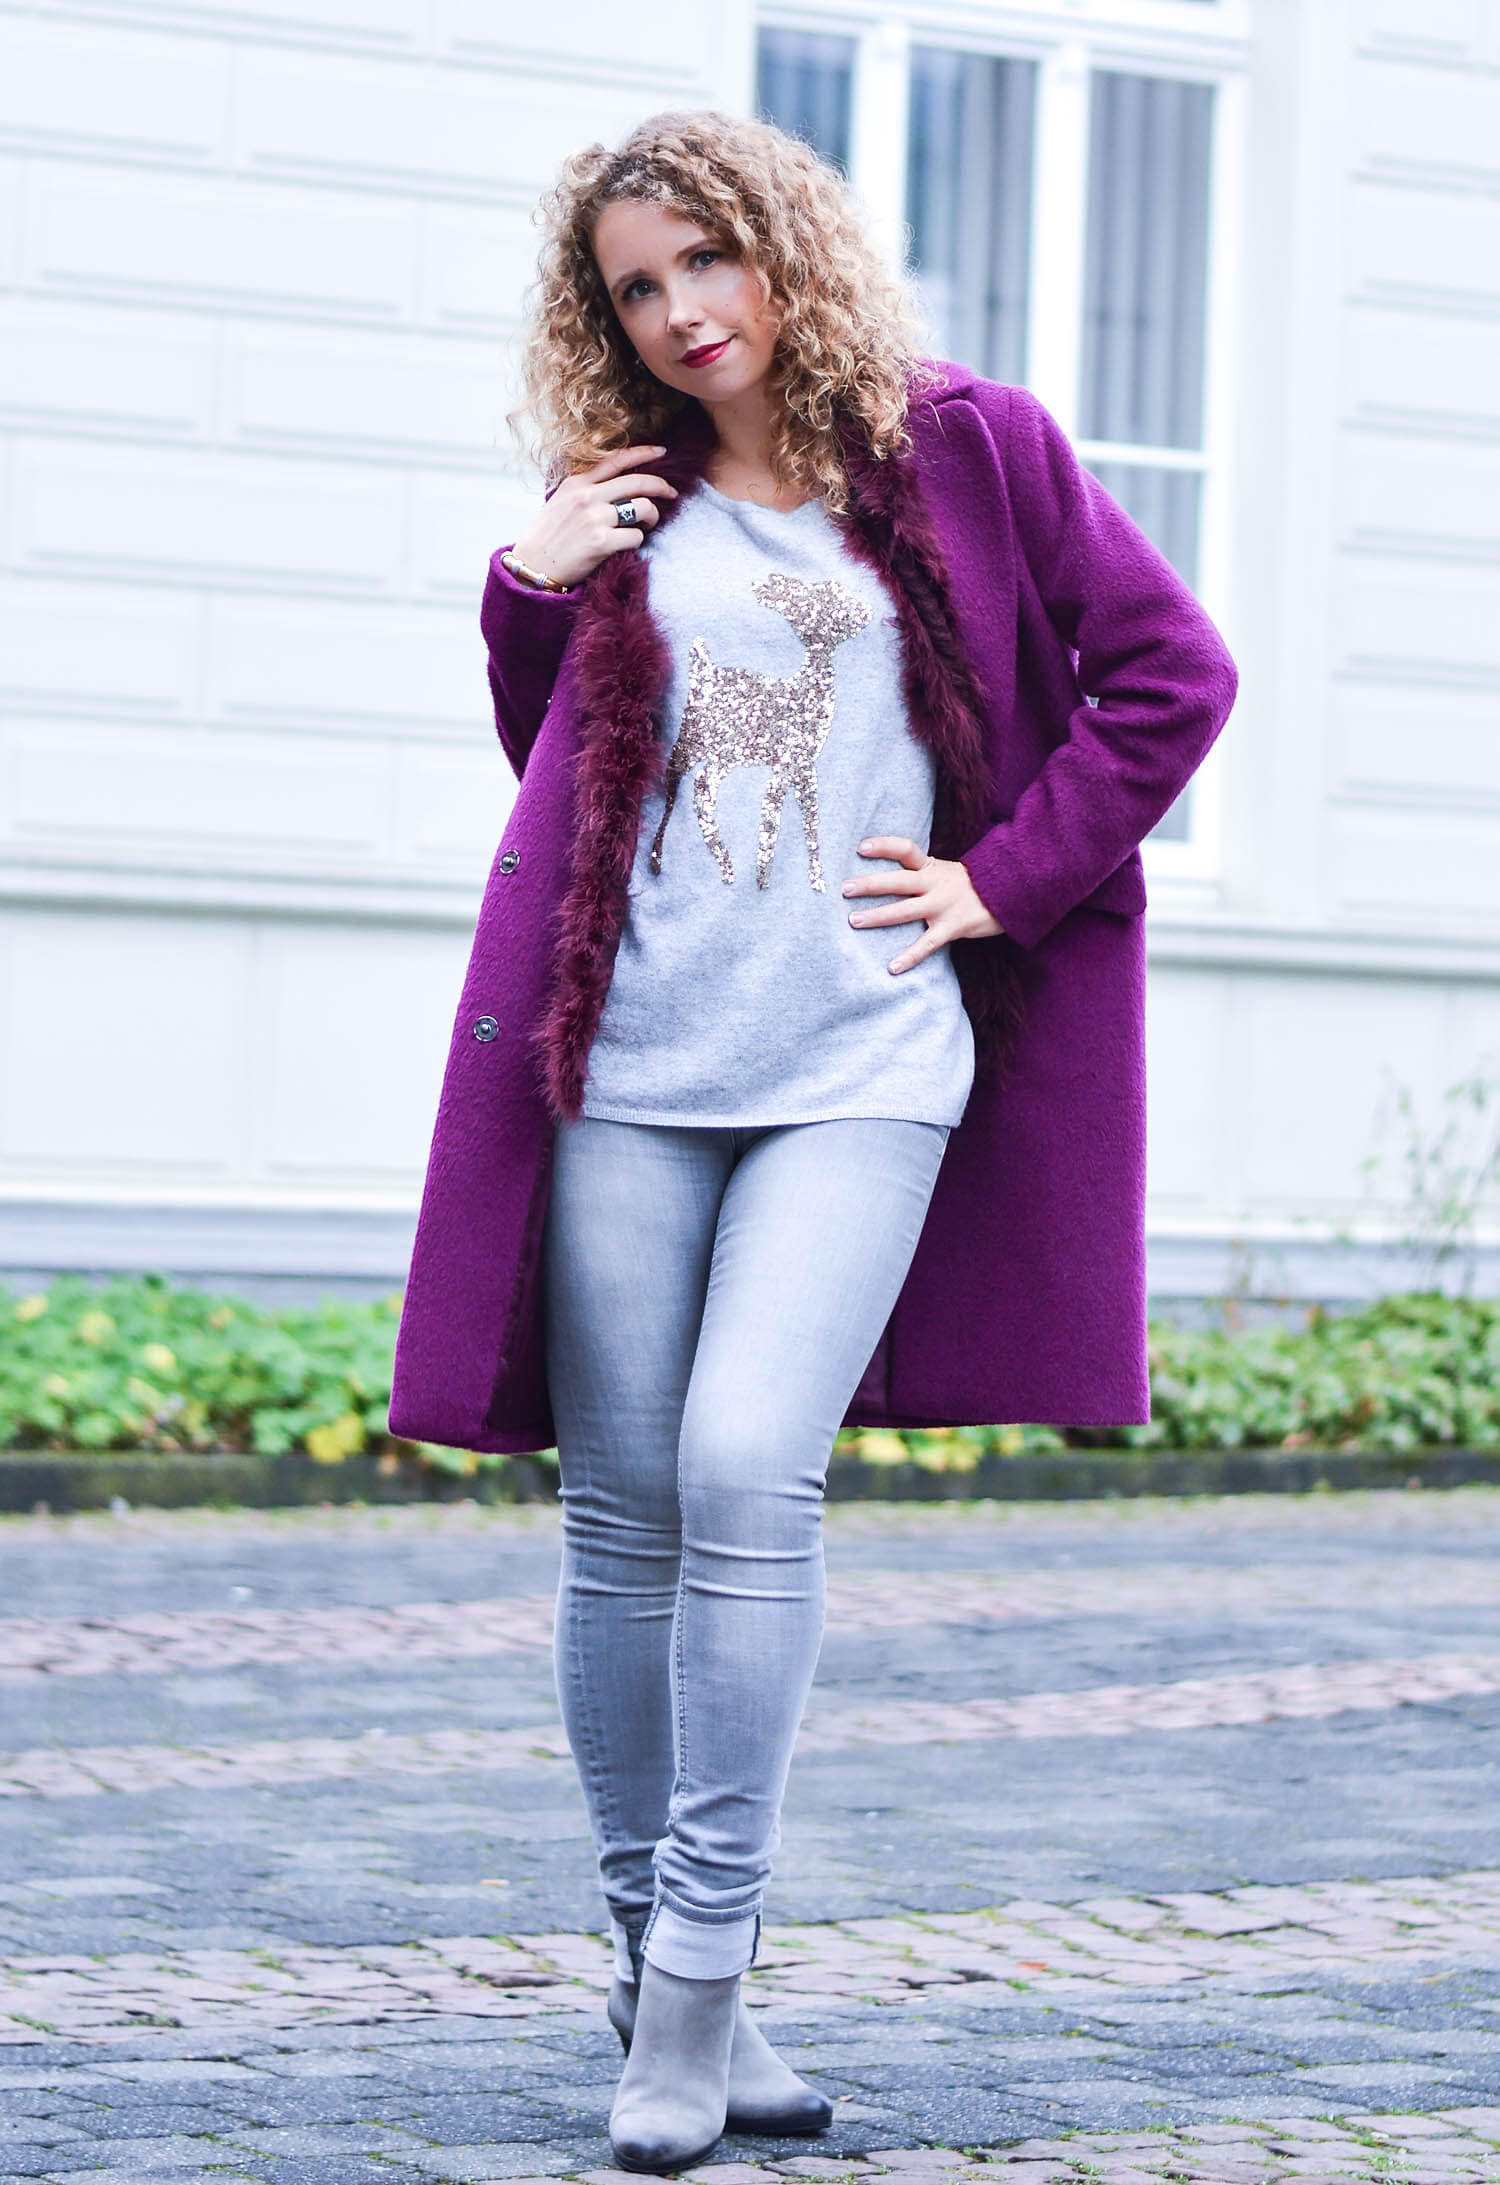 Kationette Fashionblog Outfit: Berry woolcoat, feather vest and sequin reindeer